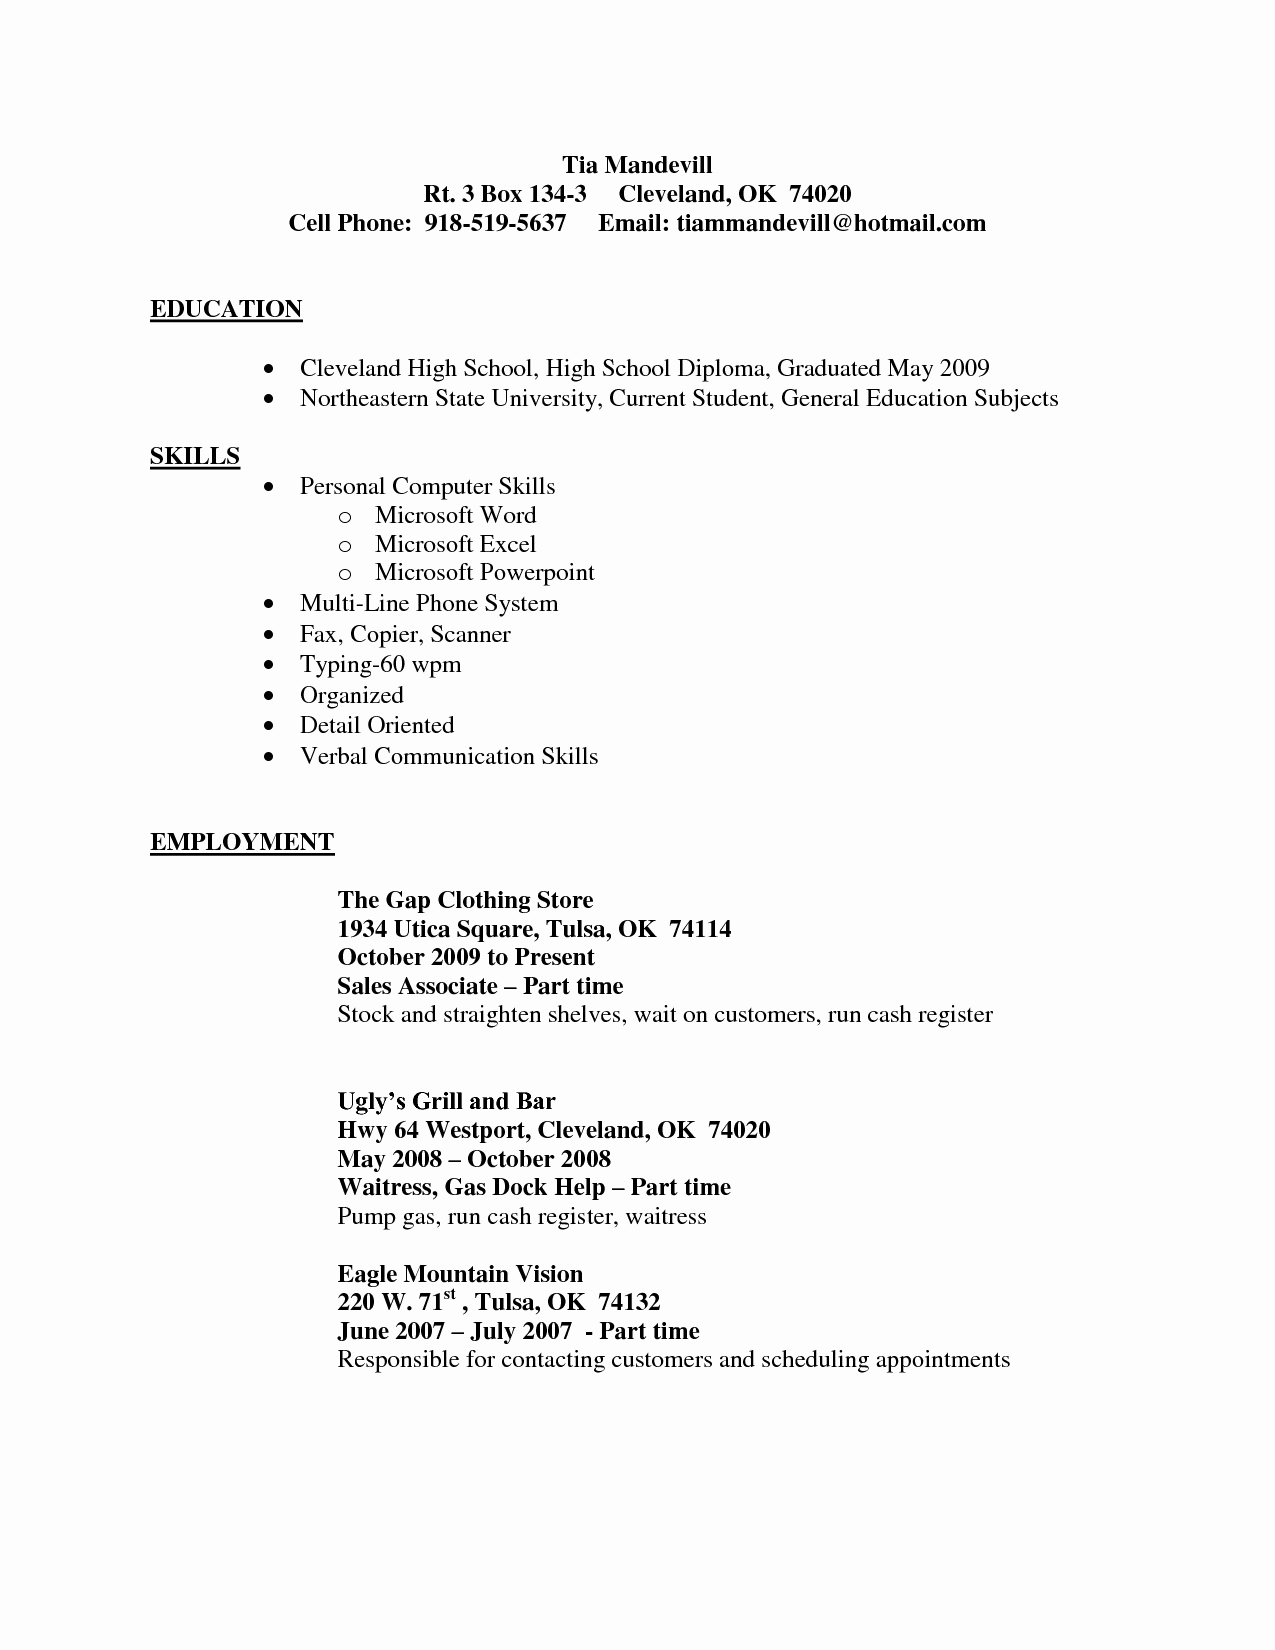 Best Cna Resume Nursing assistant Job Description In A